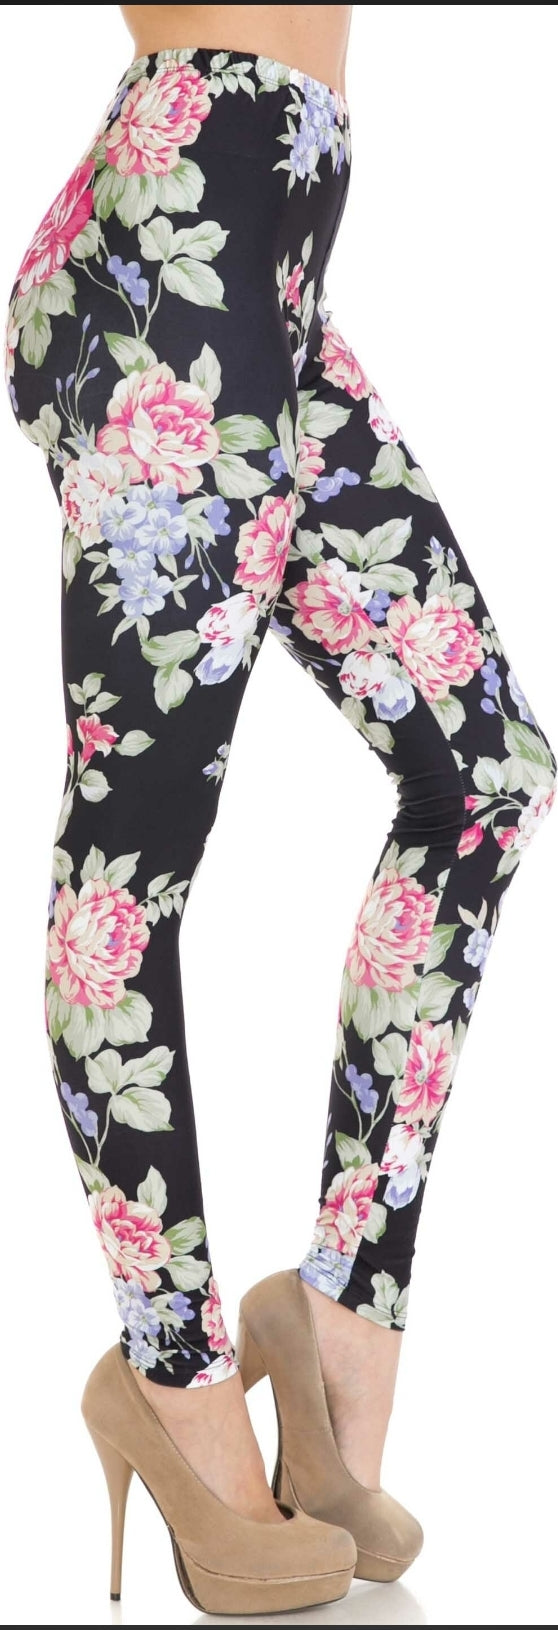 CREAMY SOFT DELIGHTFUL ROSE LEGGINGS